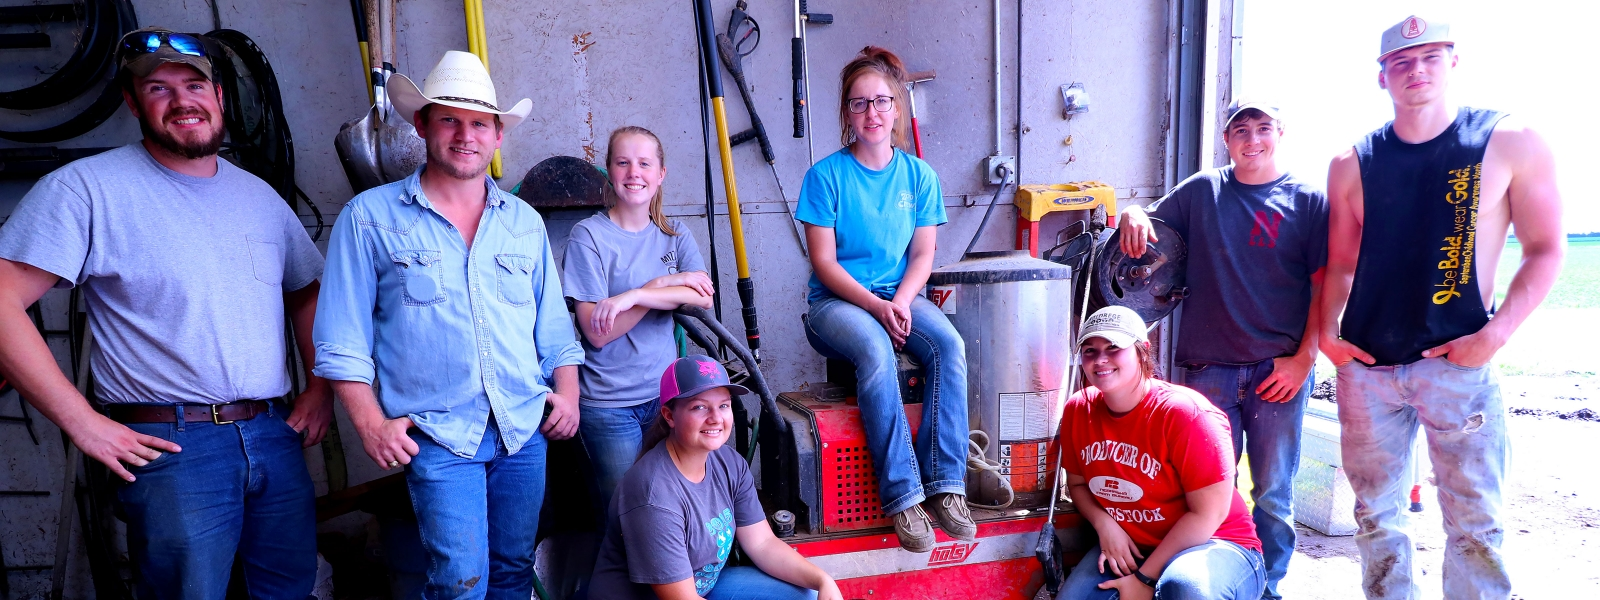 A group of interns pose for a picture in a tool shed.